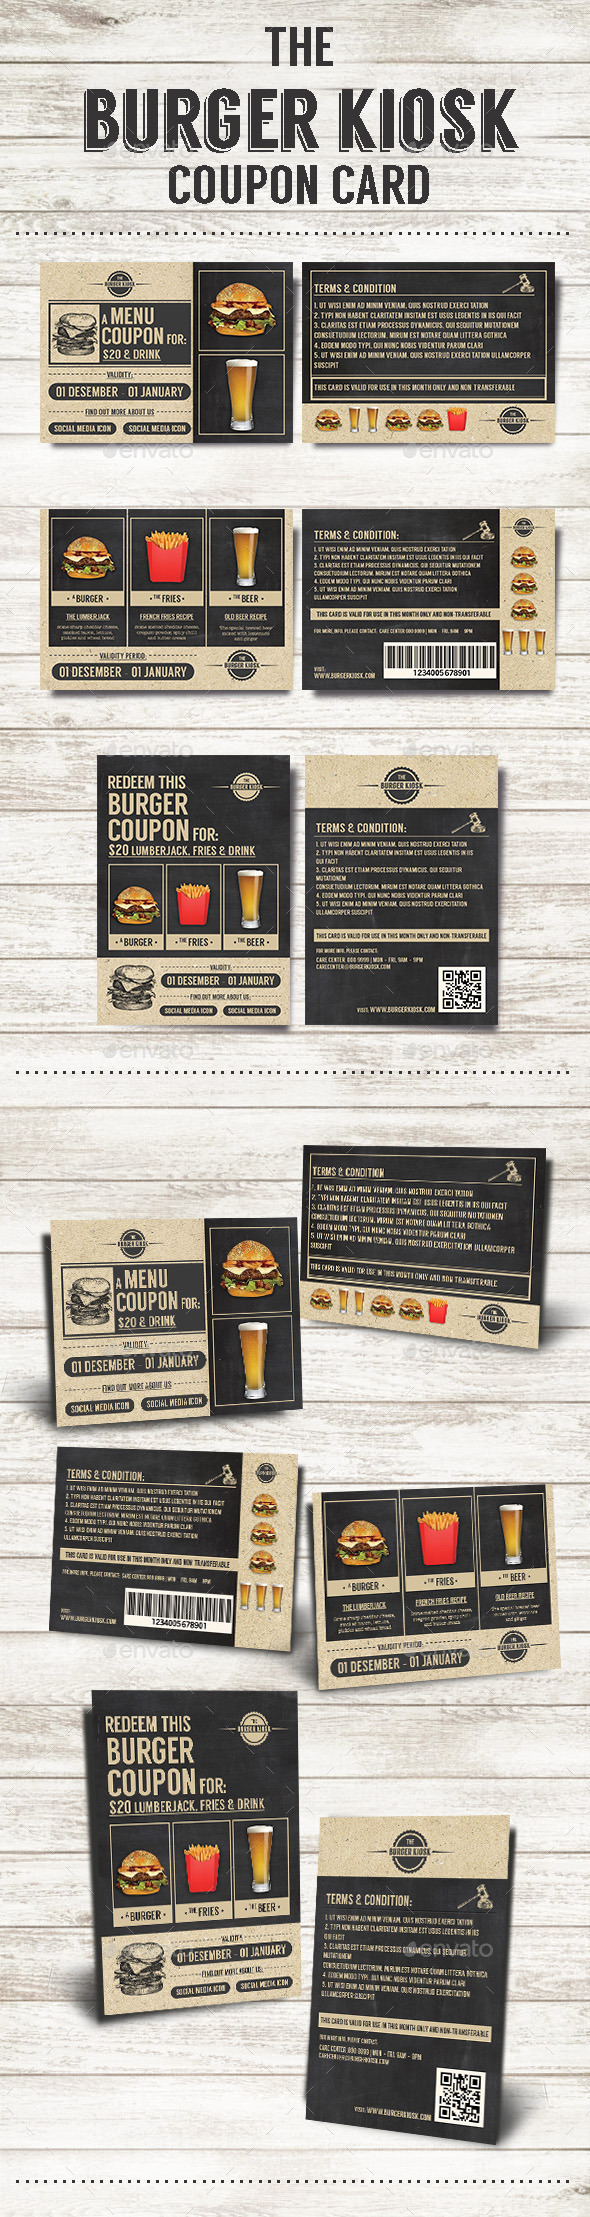 GraphicRiver The Burger Kiosk Coupon Card 9942865